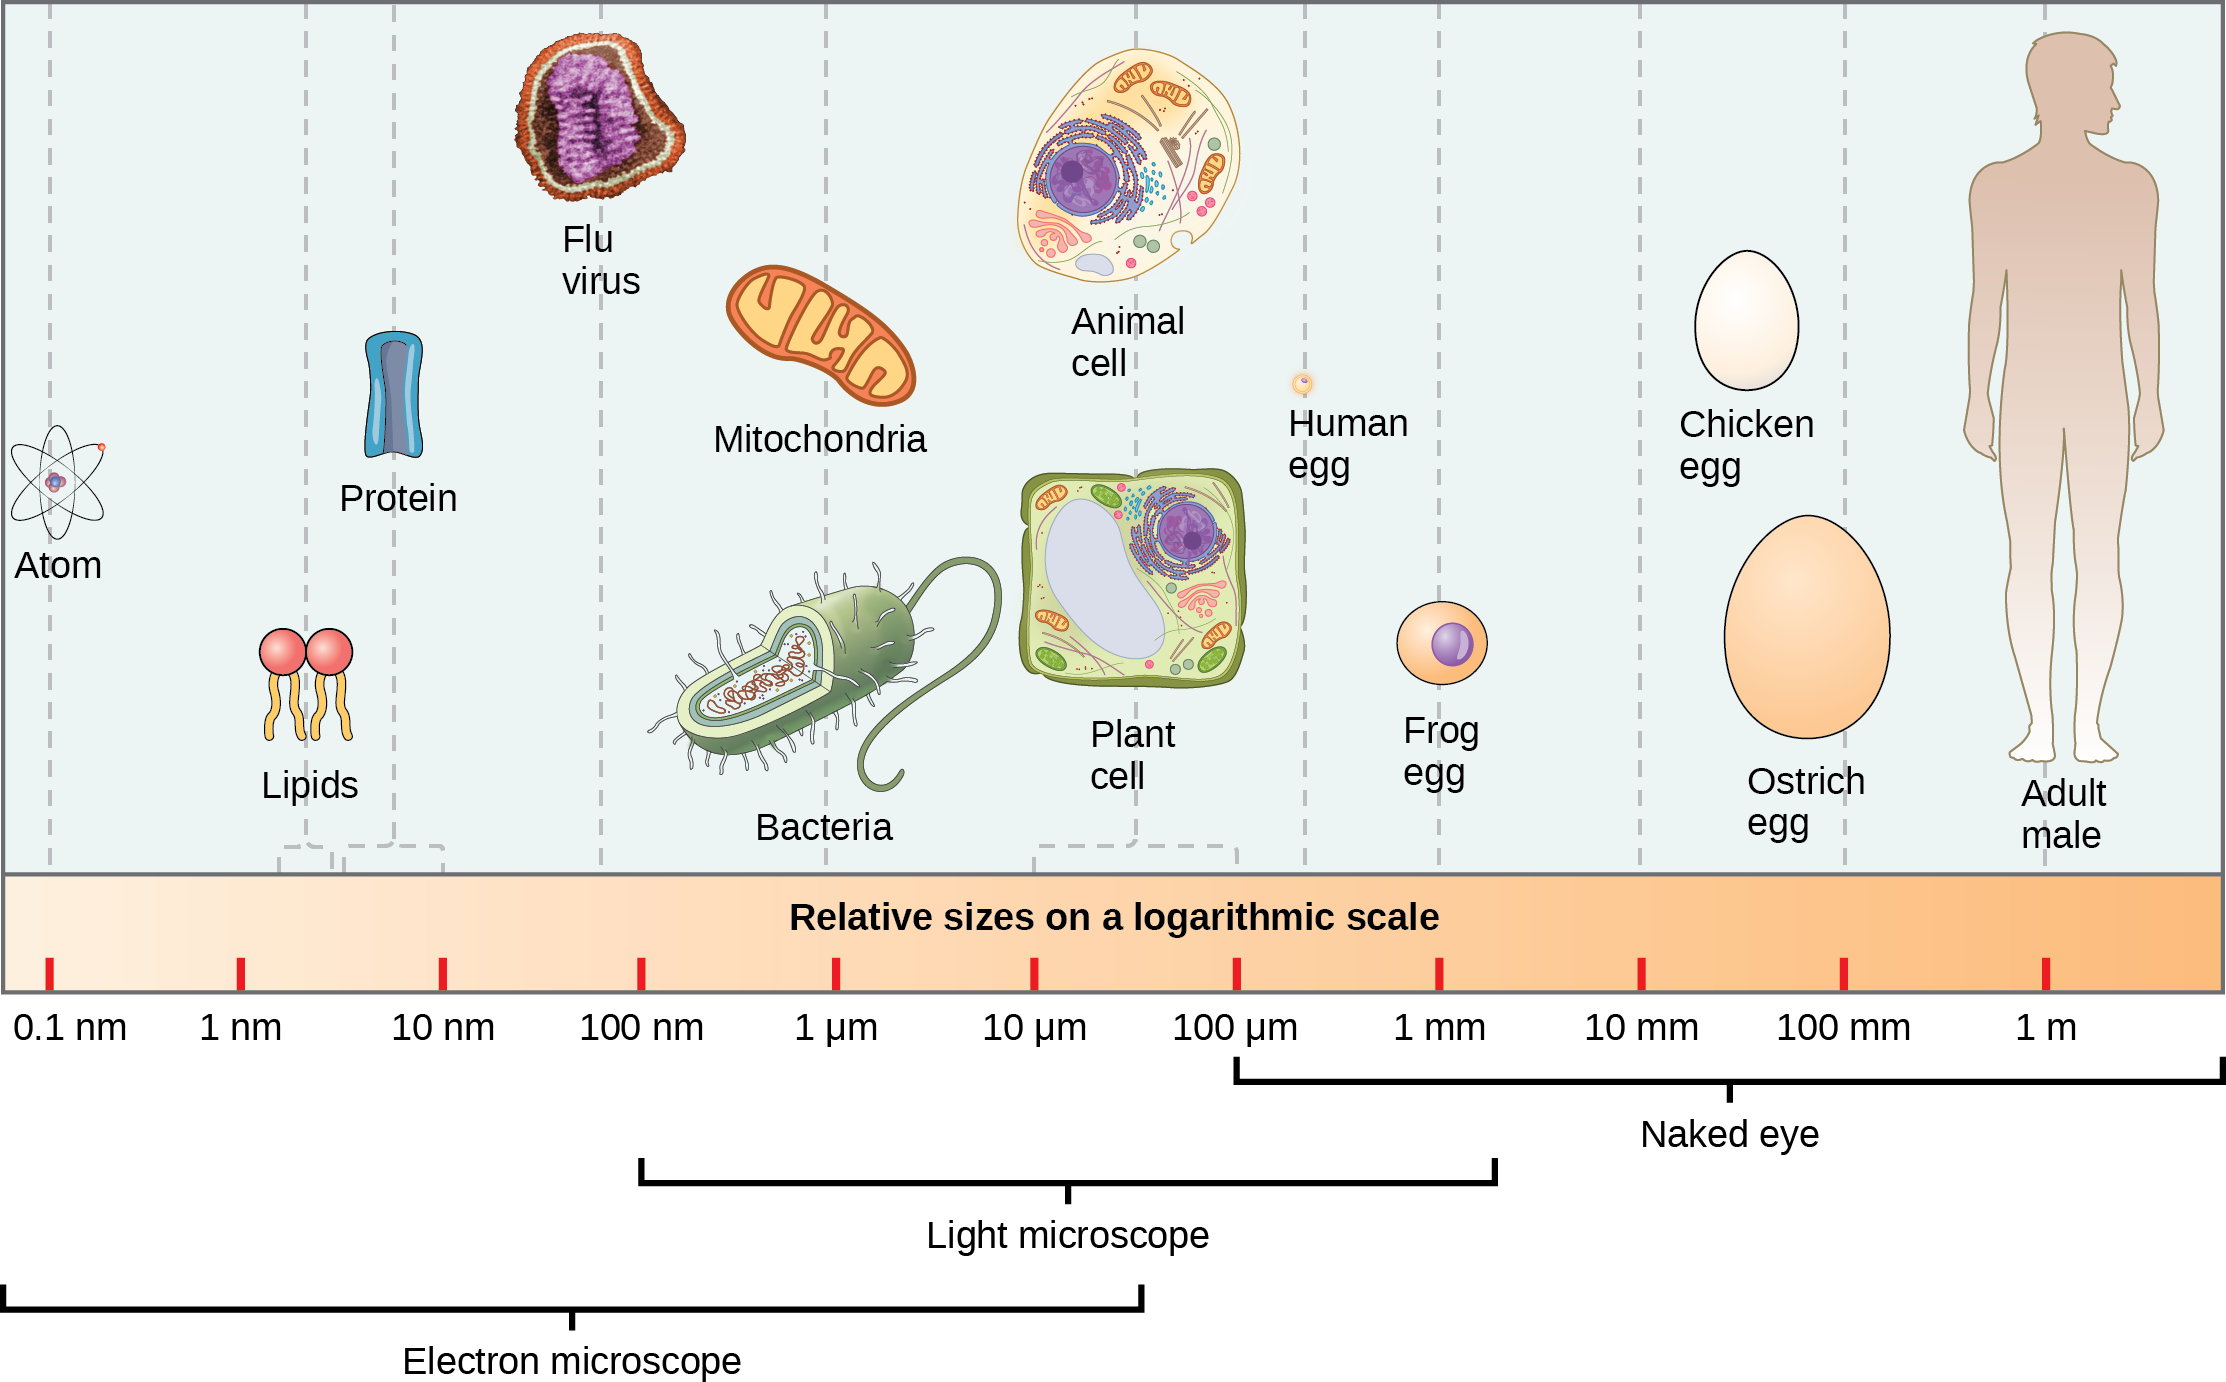 Part a: Relative sizes on a logarithmic scale, from 0.1 n m to 1 m, are shown. Objects are shown from smallest to largest. The smallest object shown, an atom, is about 1 n m in size. The next largest objects shown are lipids and proteins; these molecules are between 1 and 10 n m. Bacteria are about 100 n m, and mitochondria are about 1 greek mu m. Plant and animal cells are both between 10 and 100 greek mu m. A human egg is between 100 greek mu m and 1 m m. A frog egg is about 1 m m, A chicken egg and an ostrich egg are both between 10 and 100 m m, but a chicken egg is larger. For comparison, a human is approximately 1 m tall.